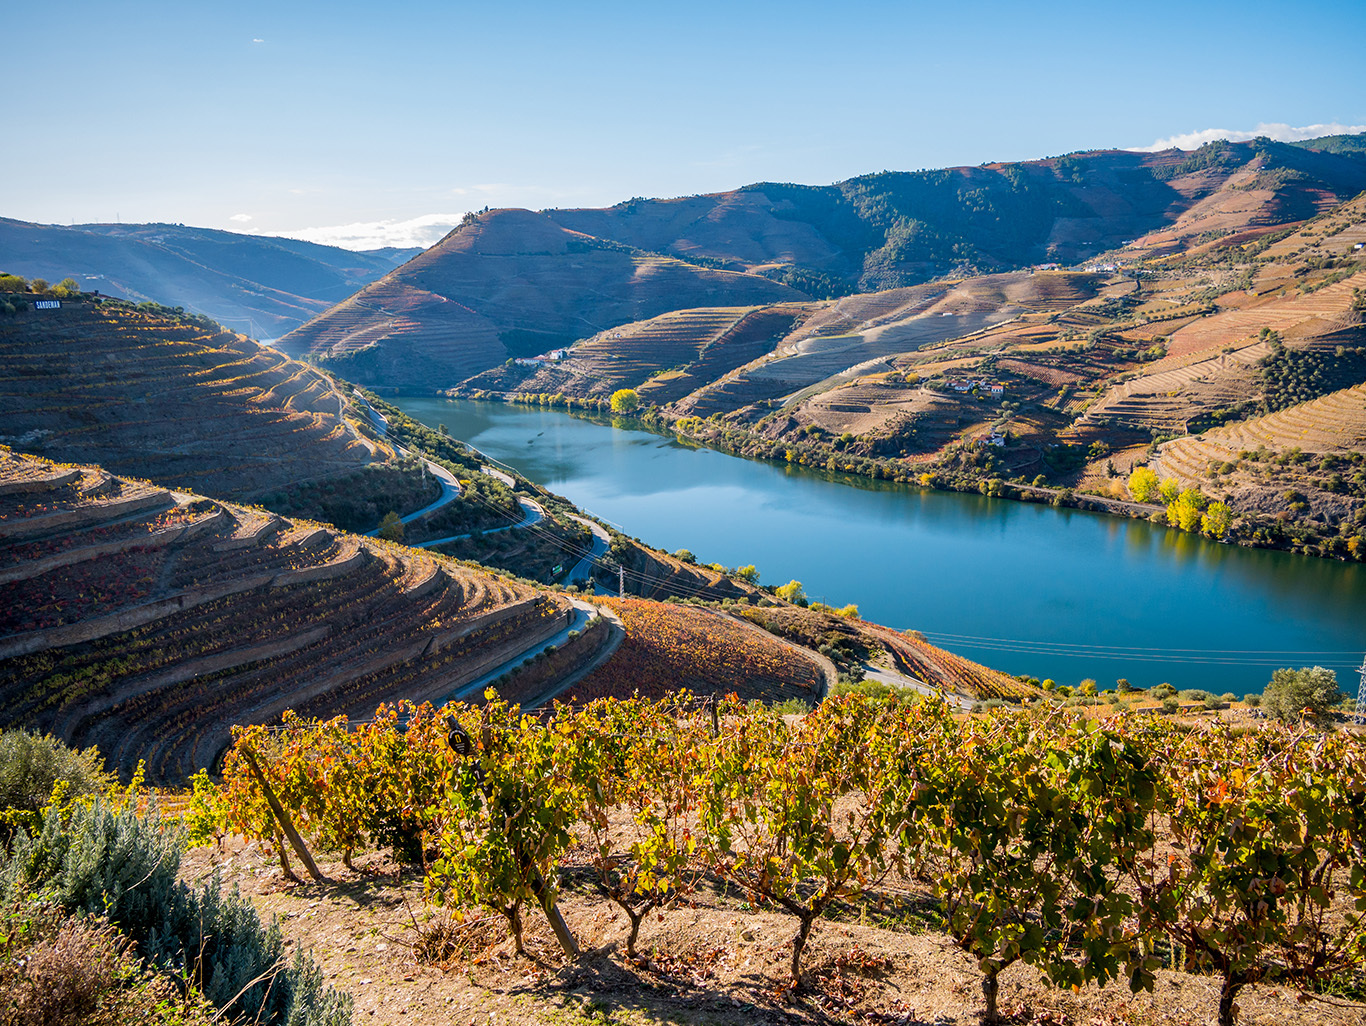 4) Discover the Douro River Valley – a UNESCO World Heritage Site